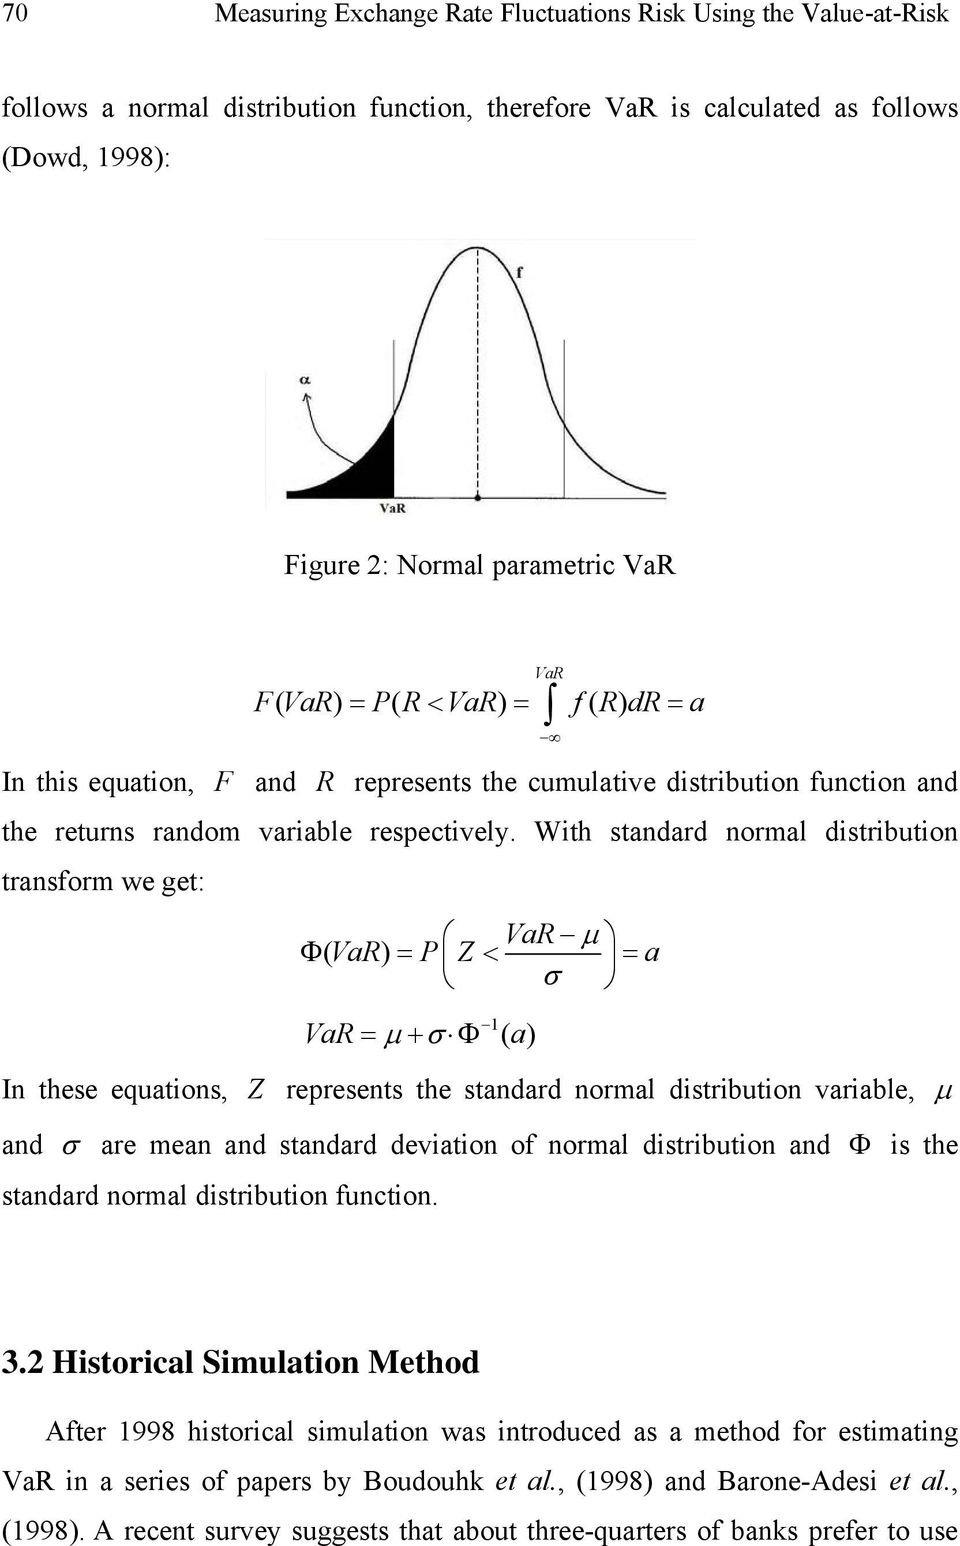 With standard normal distribution transform we get: VaR ( VaR) P Z a VaR 1 ( a) In these equations, Z represents the standard normal distribution variable, and are mean and standard deviation of